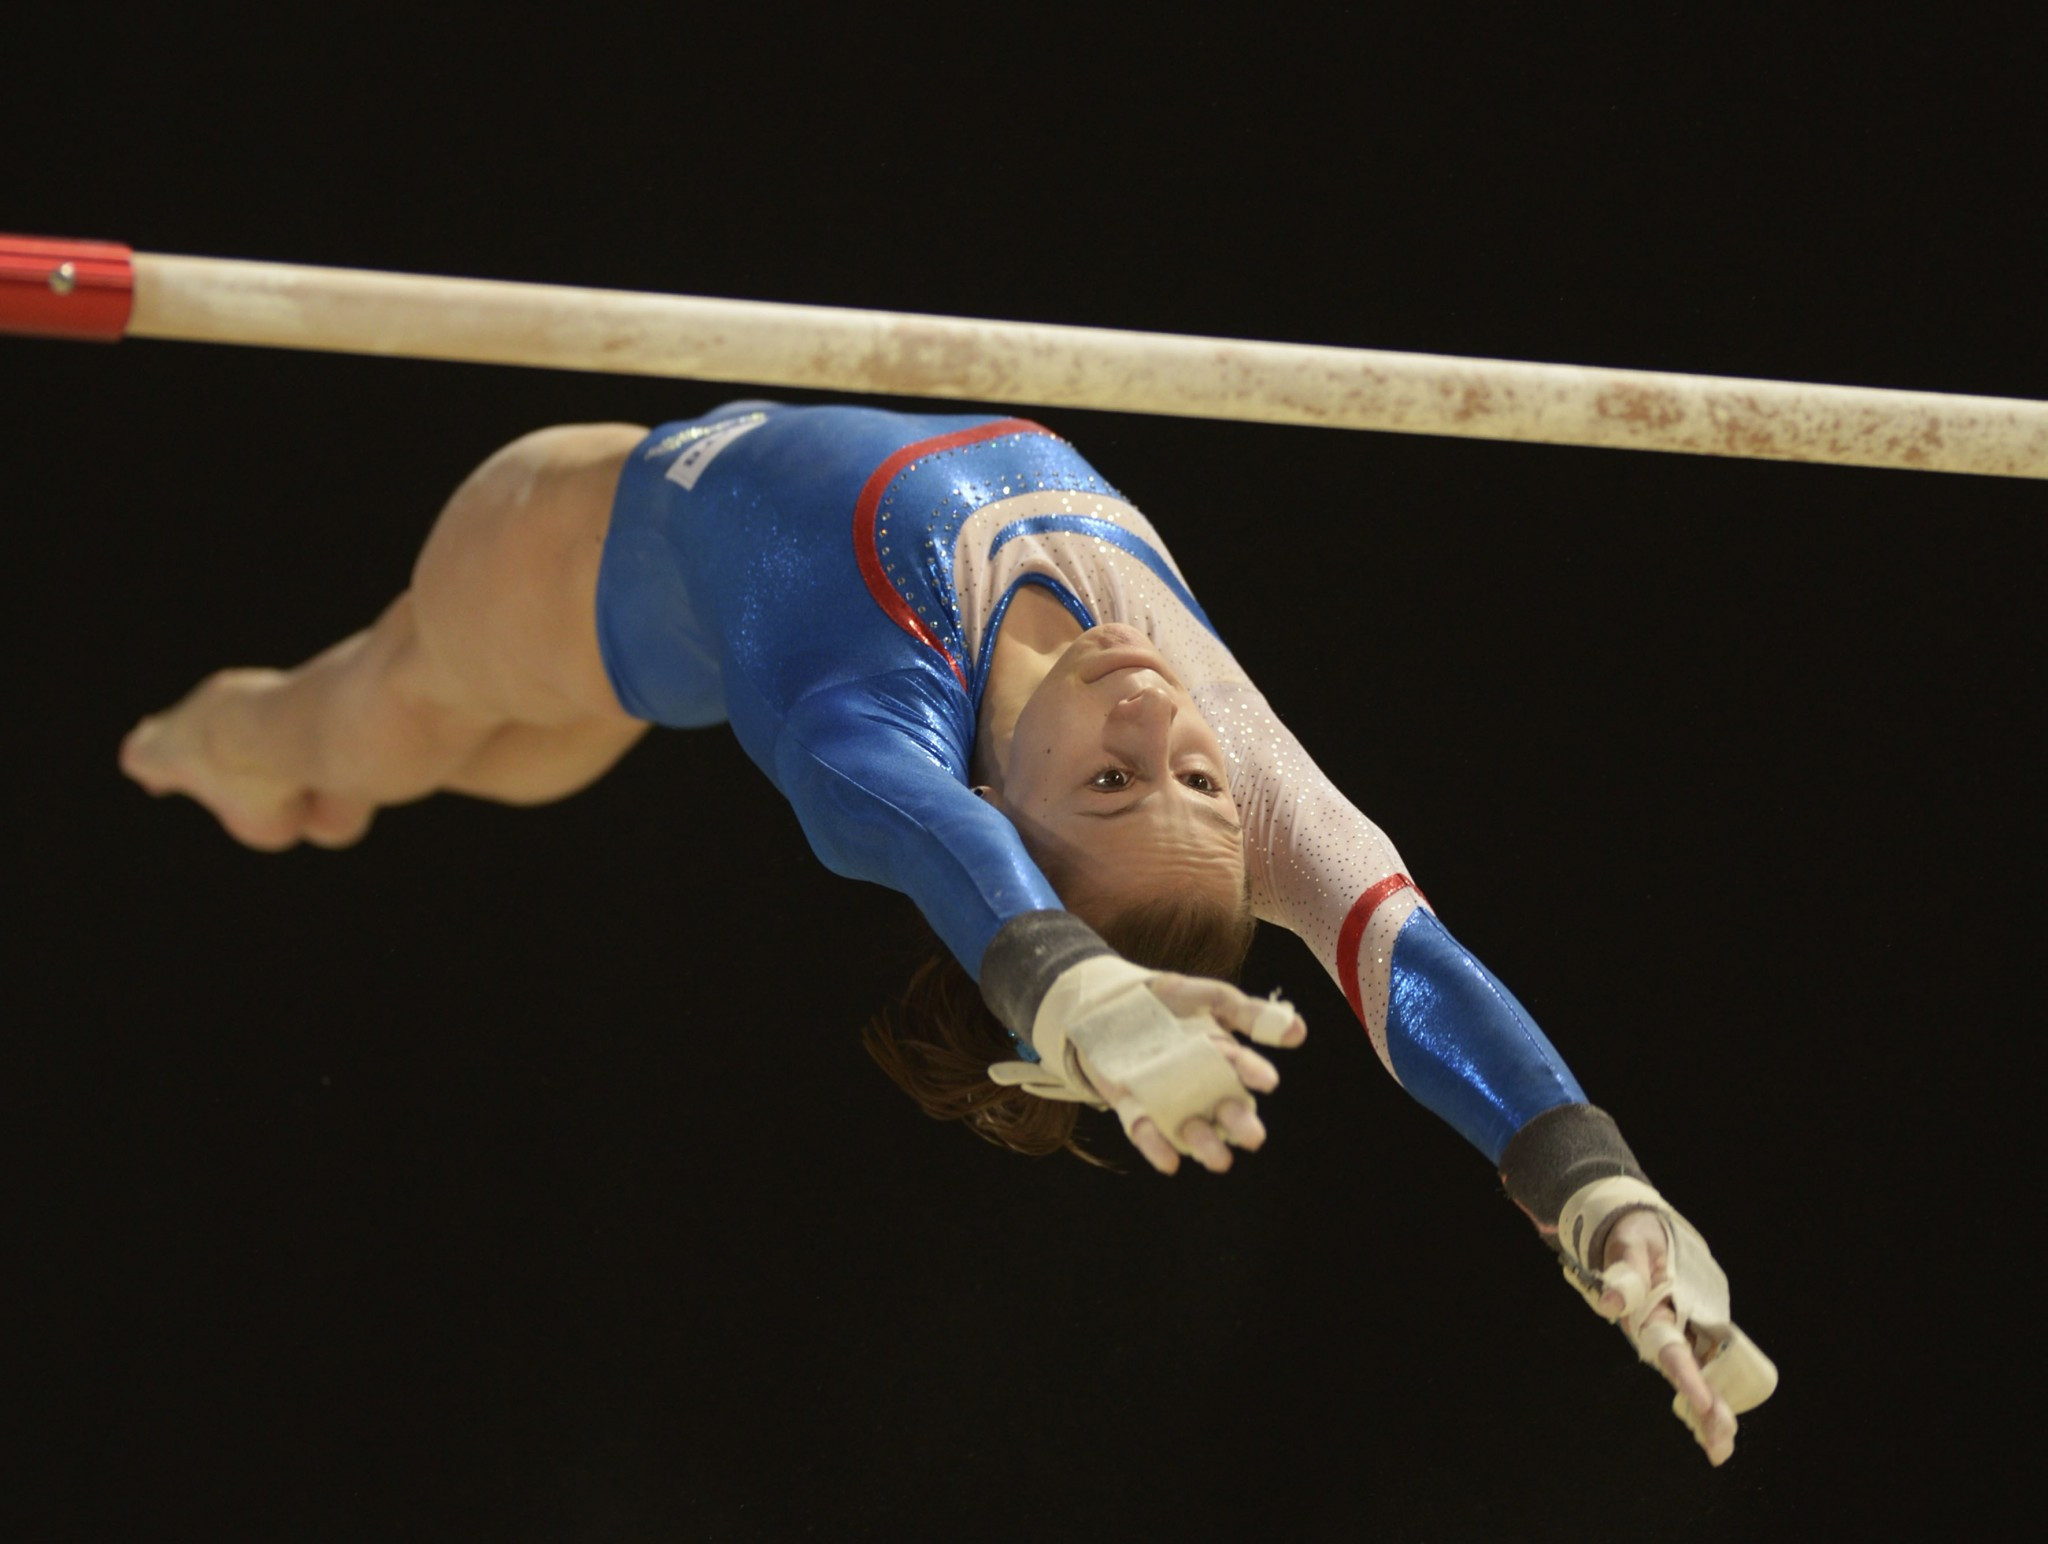 Maria Kharenkova is leading the all-around standings after day one at the European Artistic Gymnastics Individual Championships ©UEG